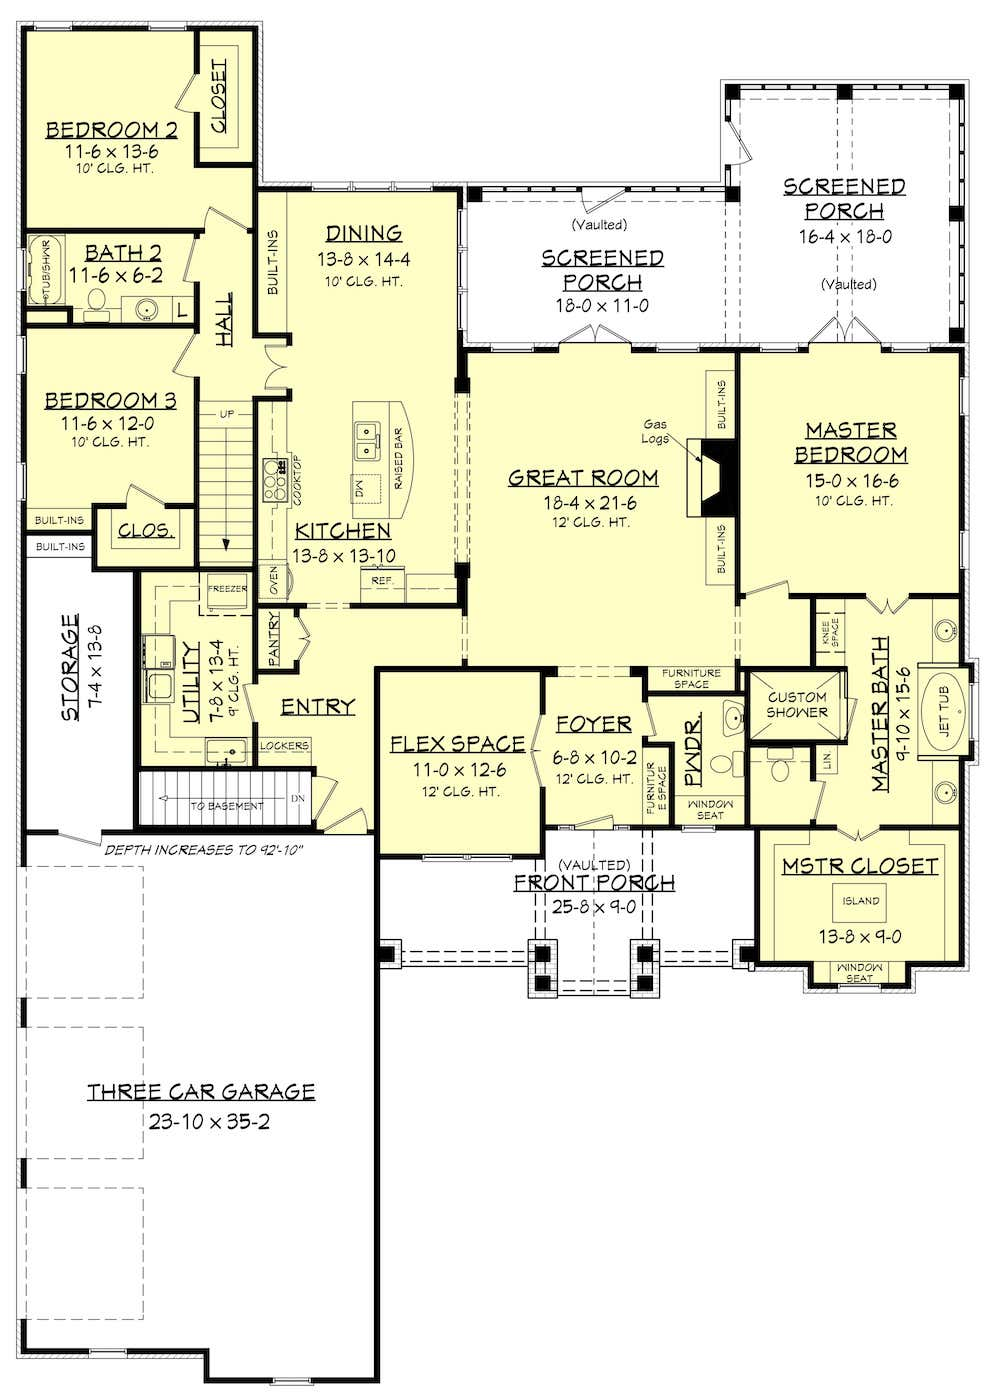 Floor plan of 3-bedroom, 2.5-bath home with split-bedroom layout